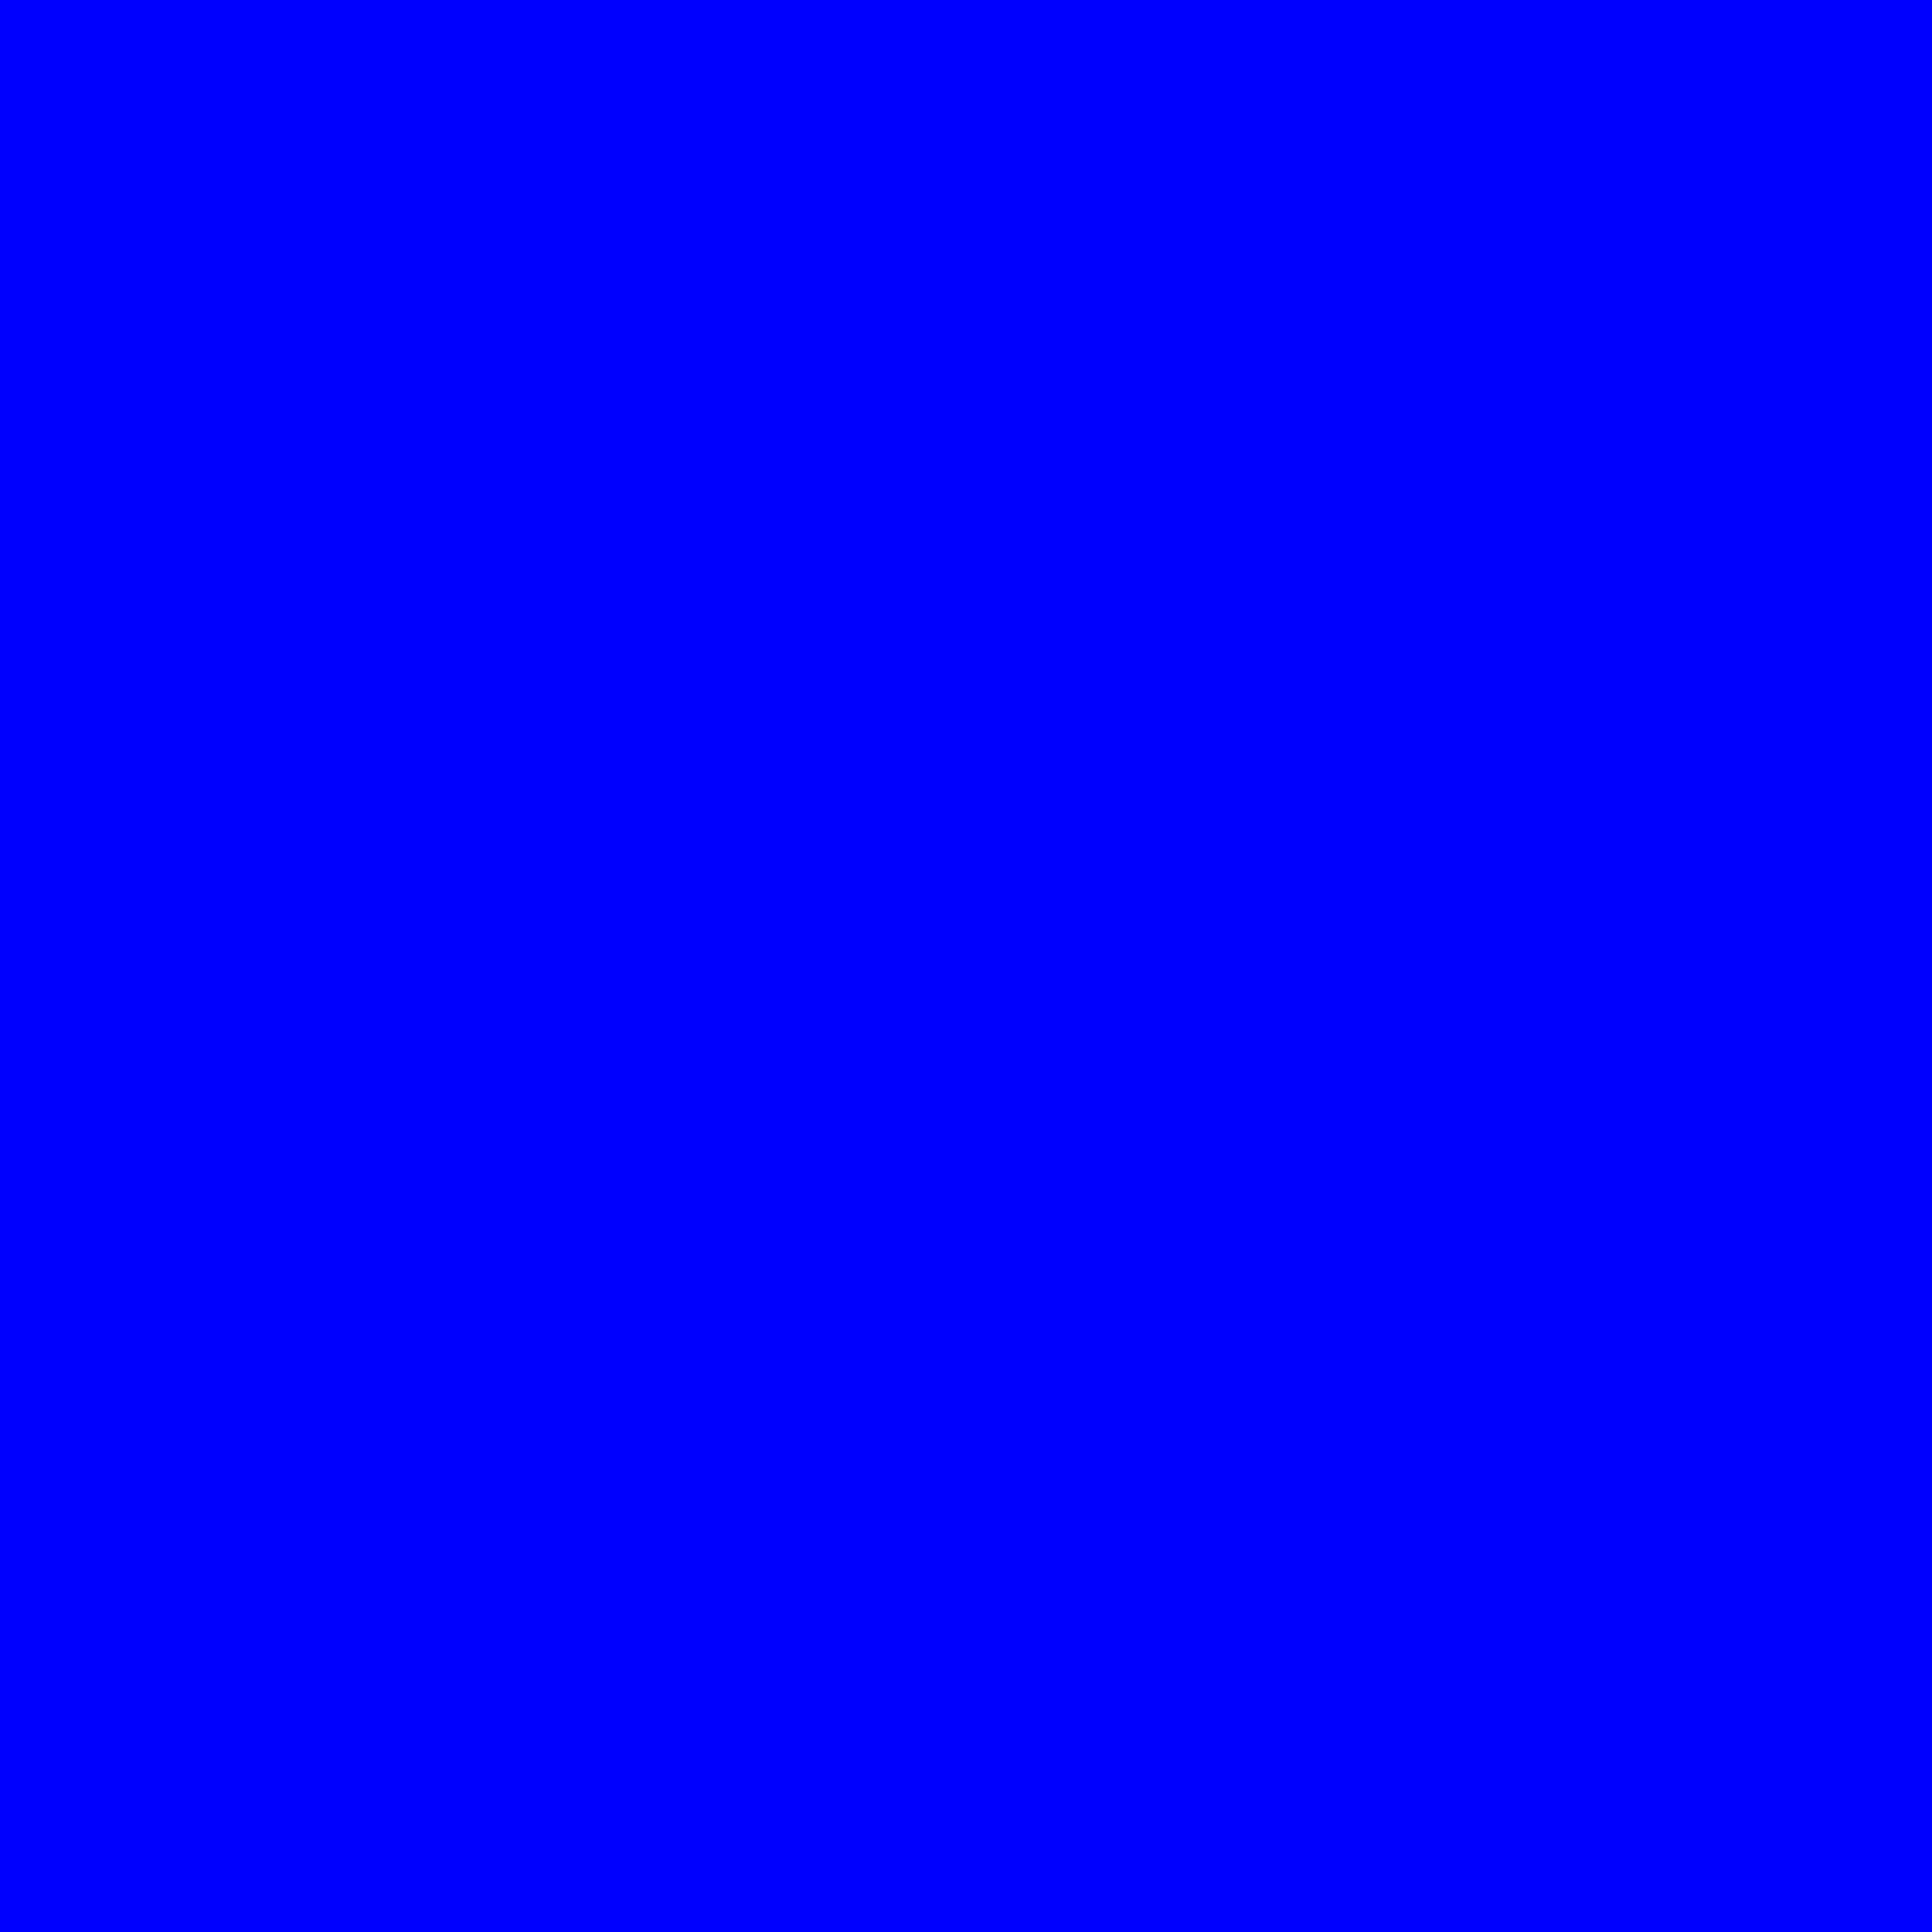 3600x3600 Blue Solid Color Background